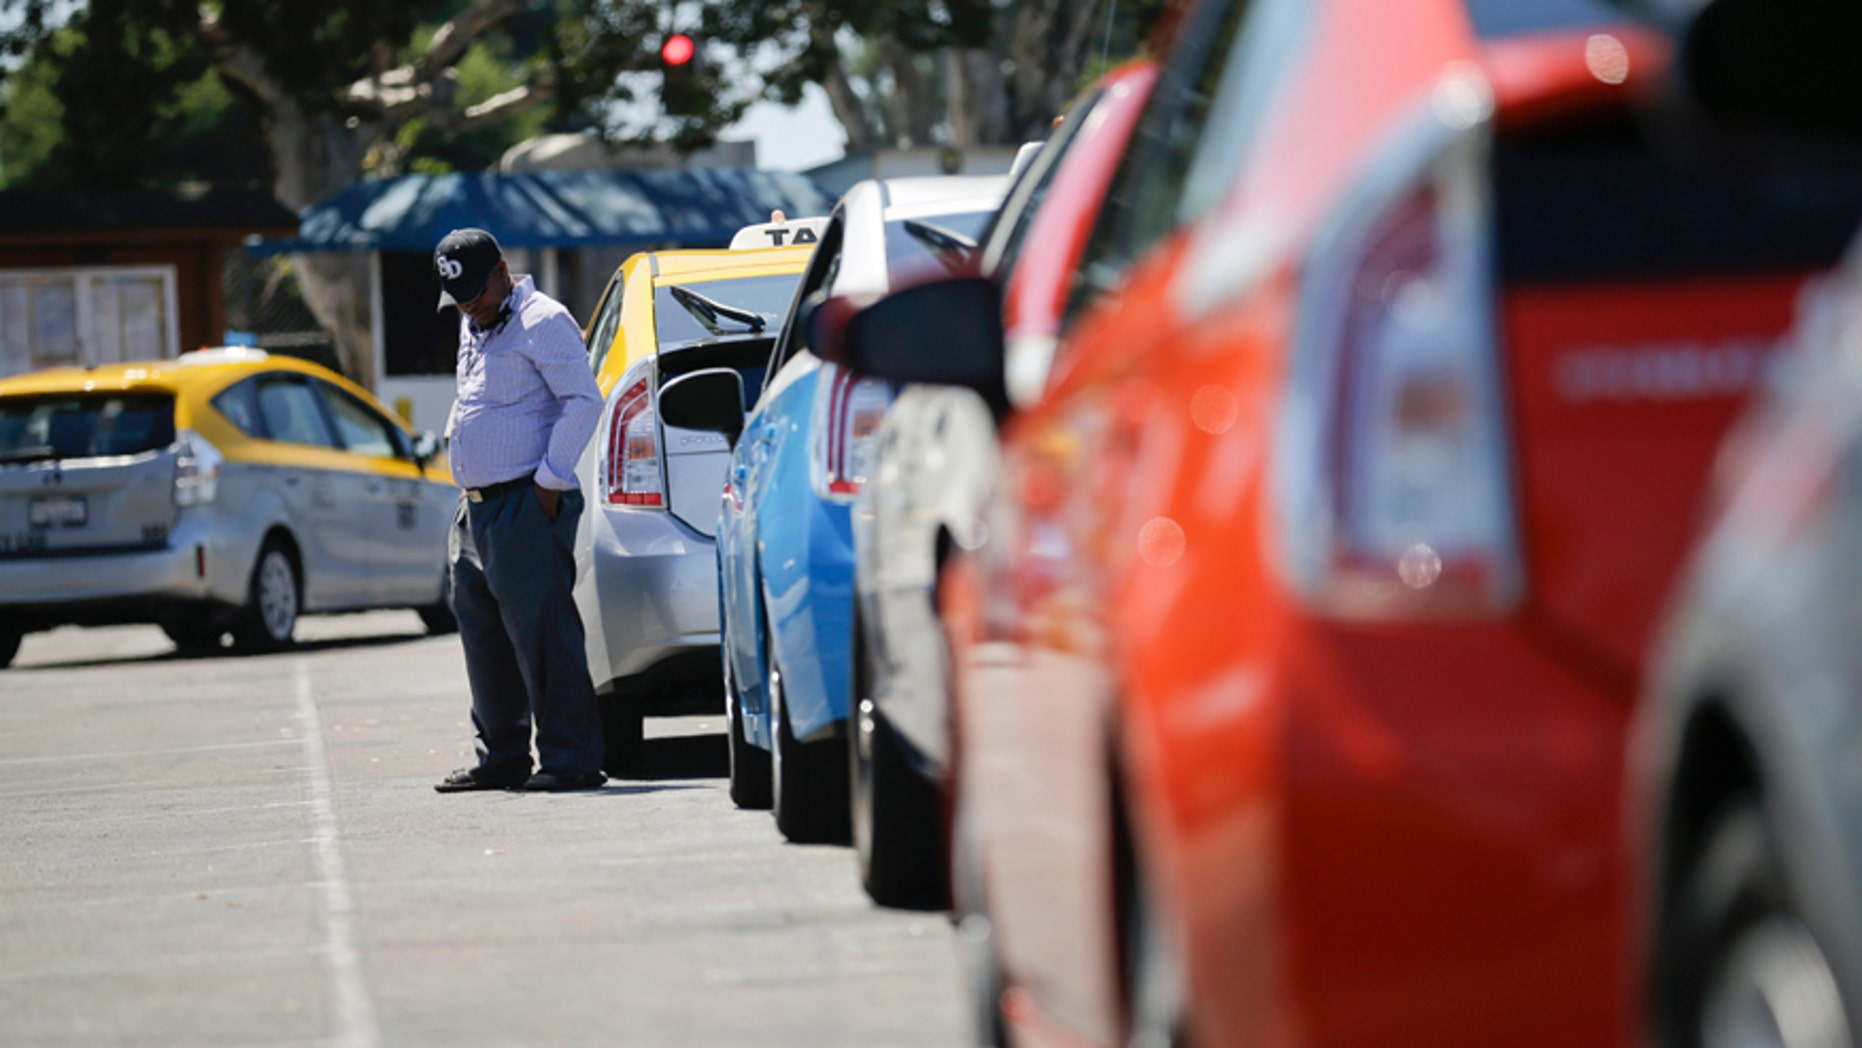 A cab driver waits near his car in line at a depot near the airport Wednesday, Sept. 10, 2014, in San Diego. Airport inspectors are judging how taxi drivers smell, a practice that some drivers say may lead to discrimination against immigrants. (AP Photo/Gregory Bull)